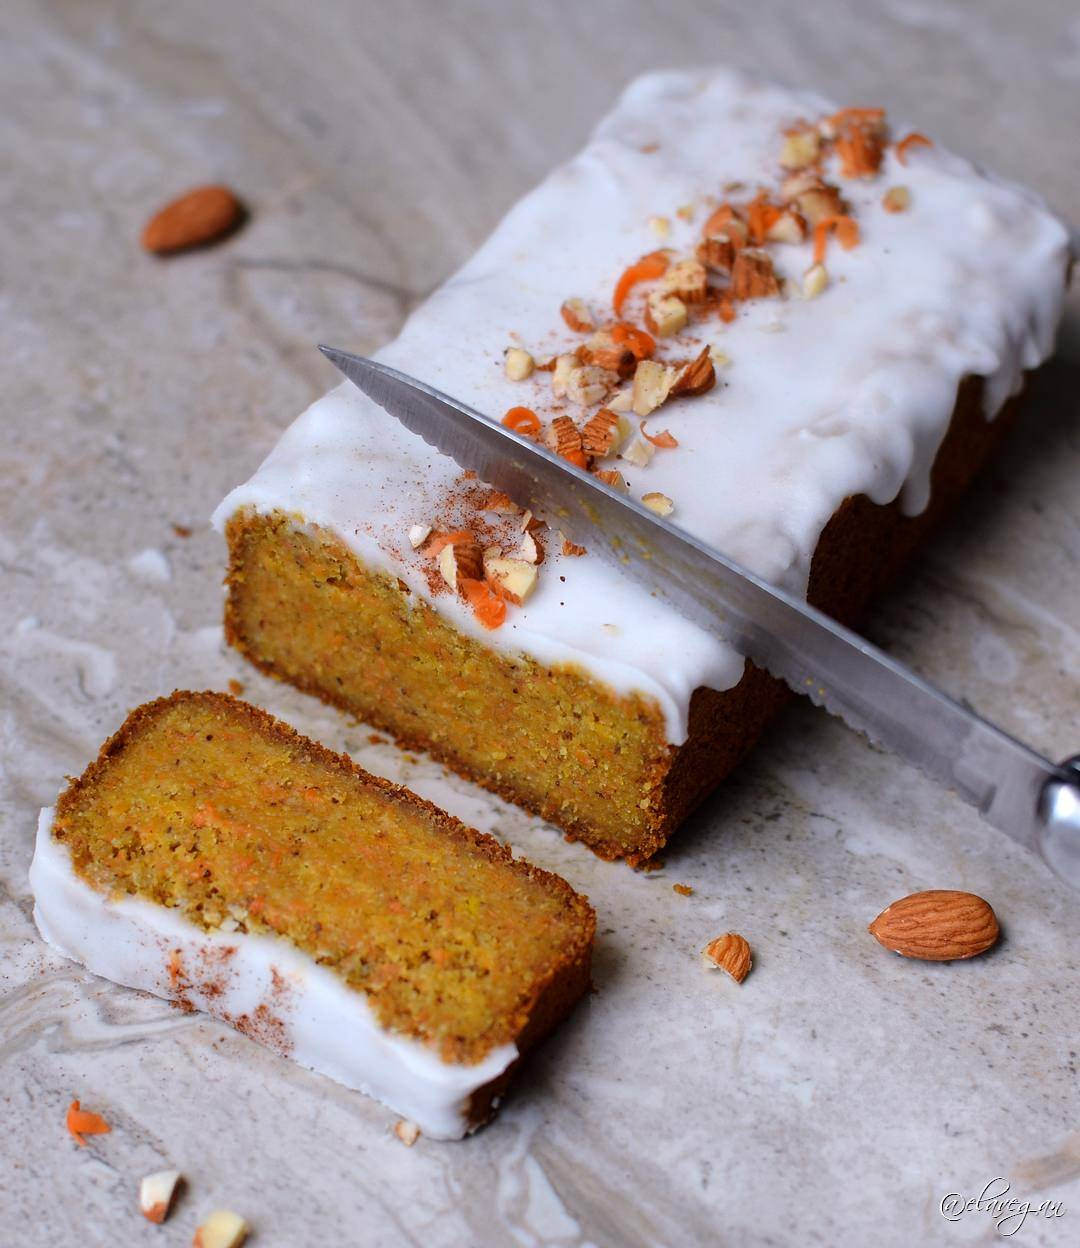 Vegan Gluten Free Carrot Cake Simple Healthy Recipe Elavegan